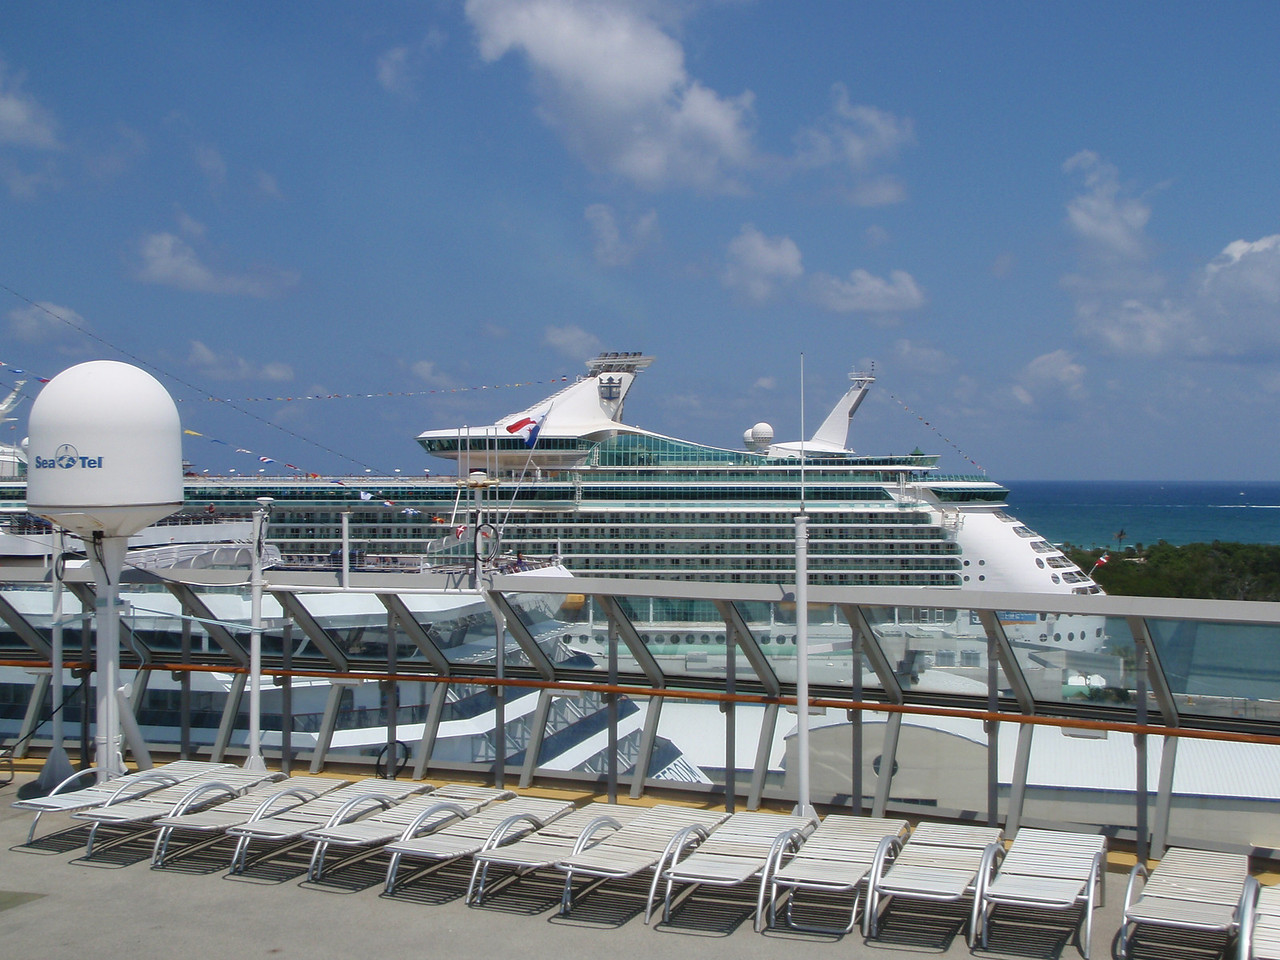 There's a glimpse of number 6 - Navigator of the Seas.  She's docked on the other side of Carnival Freedom.